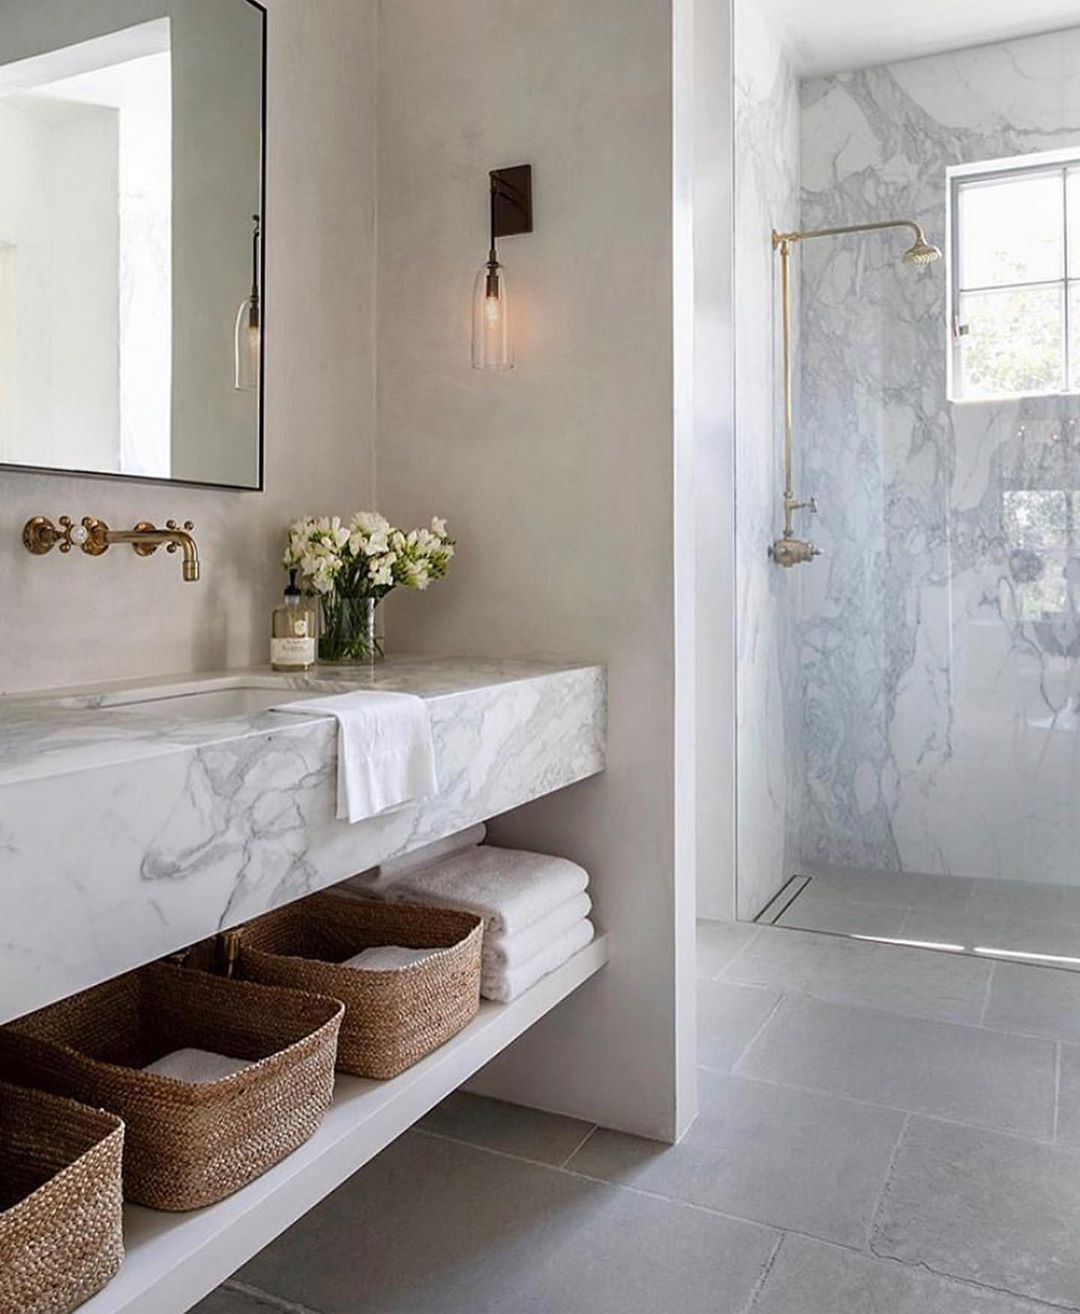 Vivir Design On Instagram So Much Beautiful Marble And So Much Yes In This Bathroom By Ji Modern Bathroom Design Bathroom Interior Design Bathroom Interior